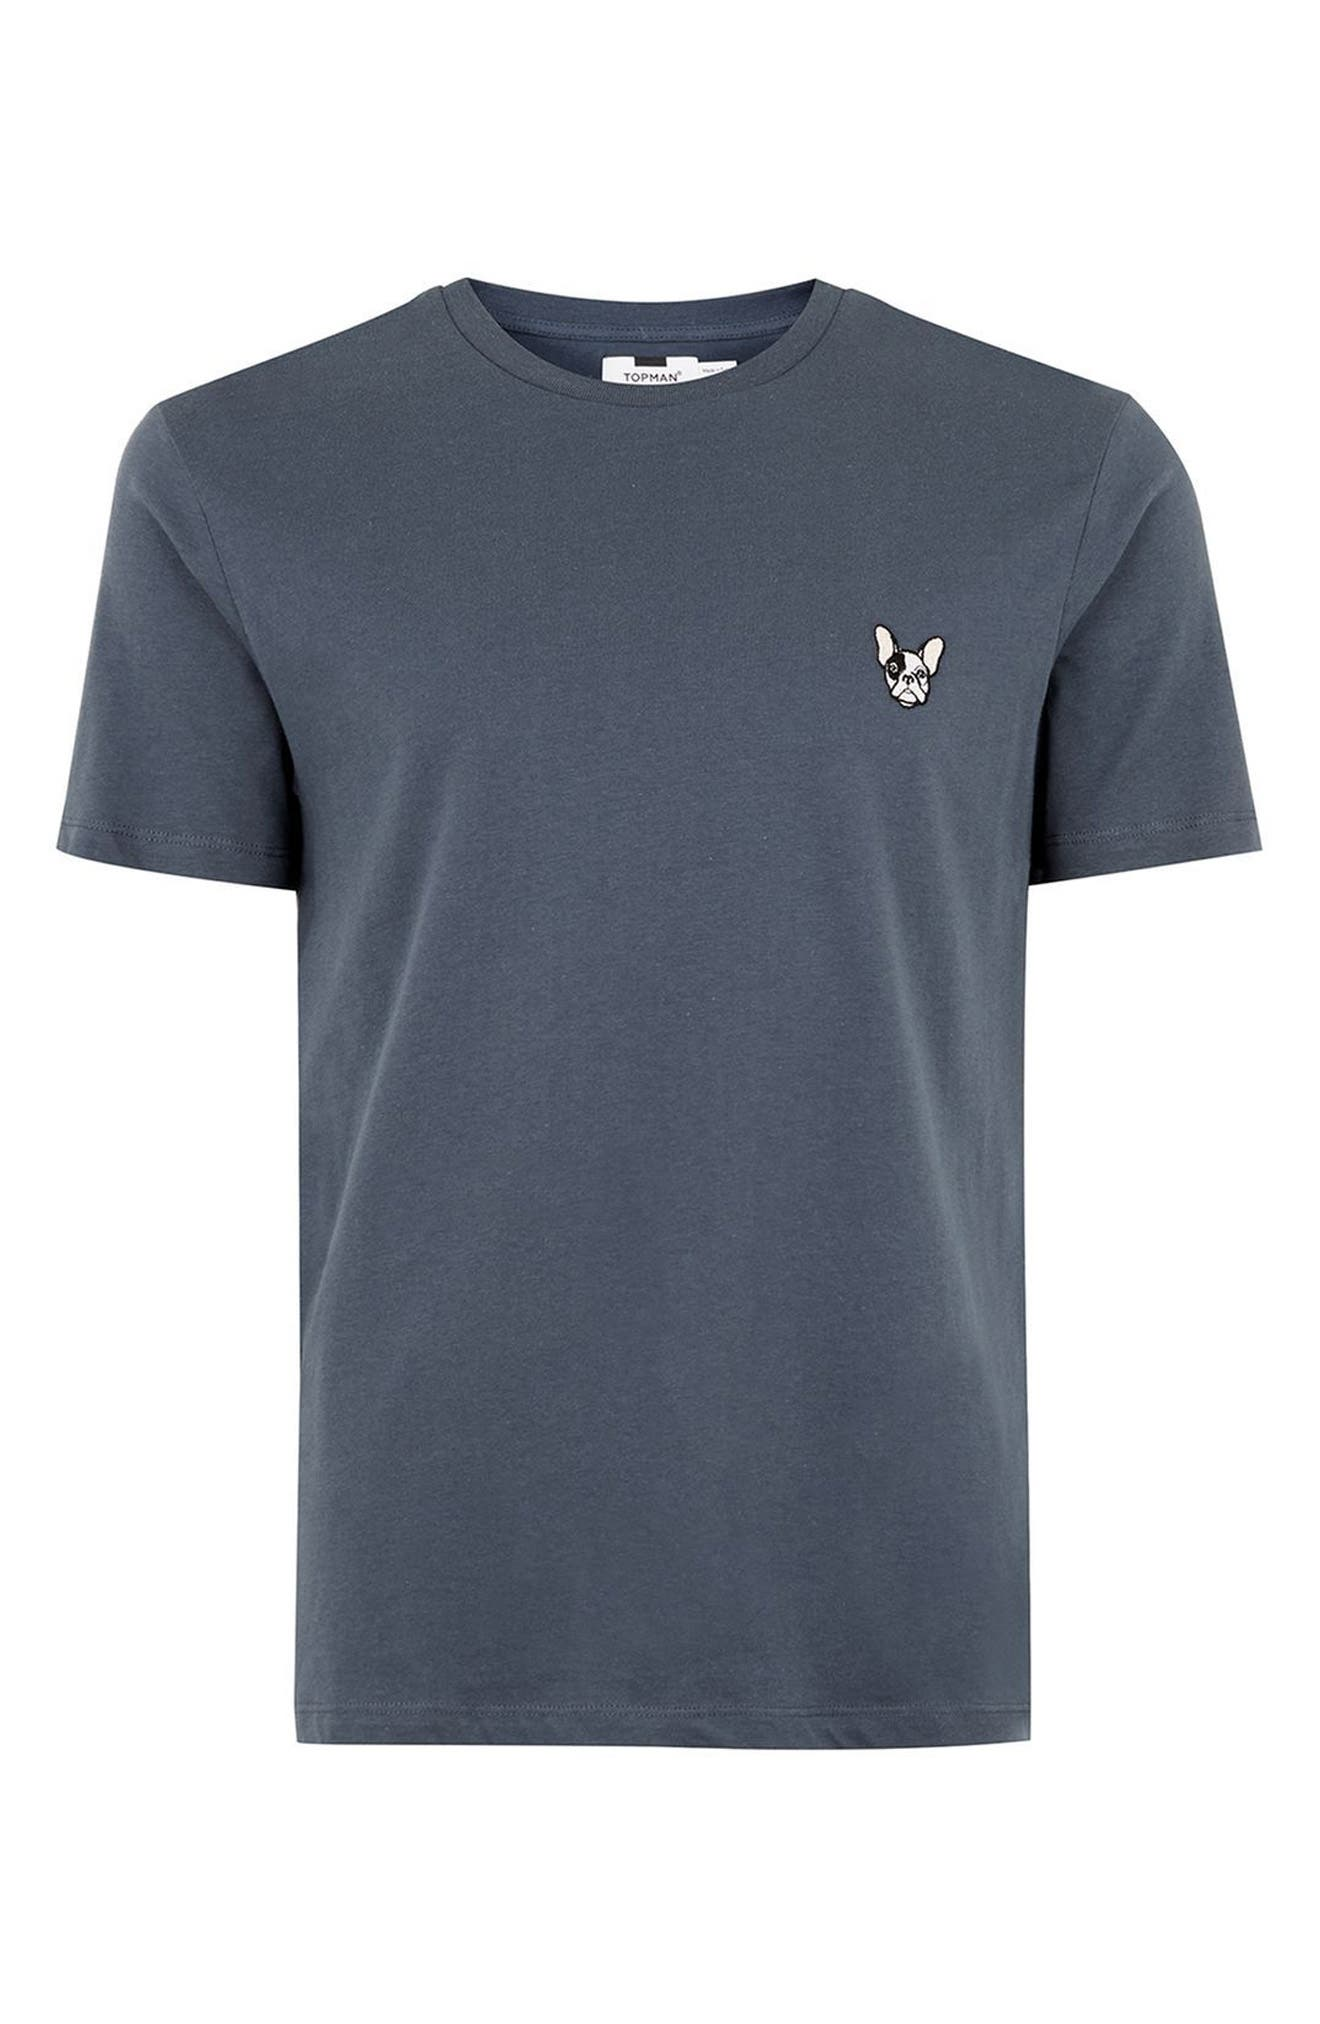 Topman Frenchie Patch T-Shirt